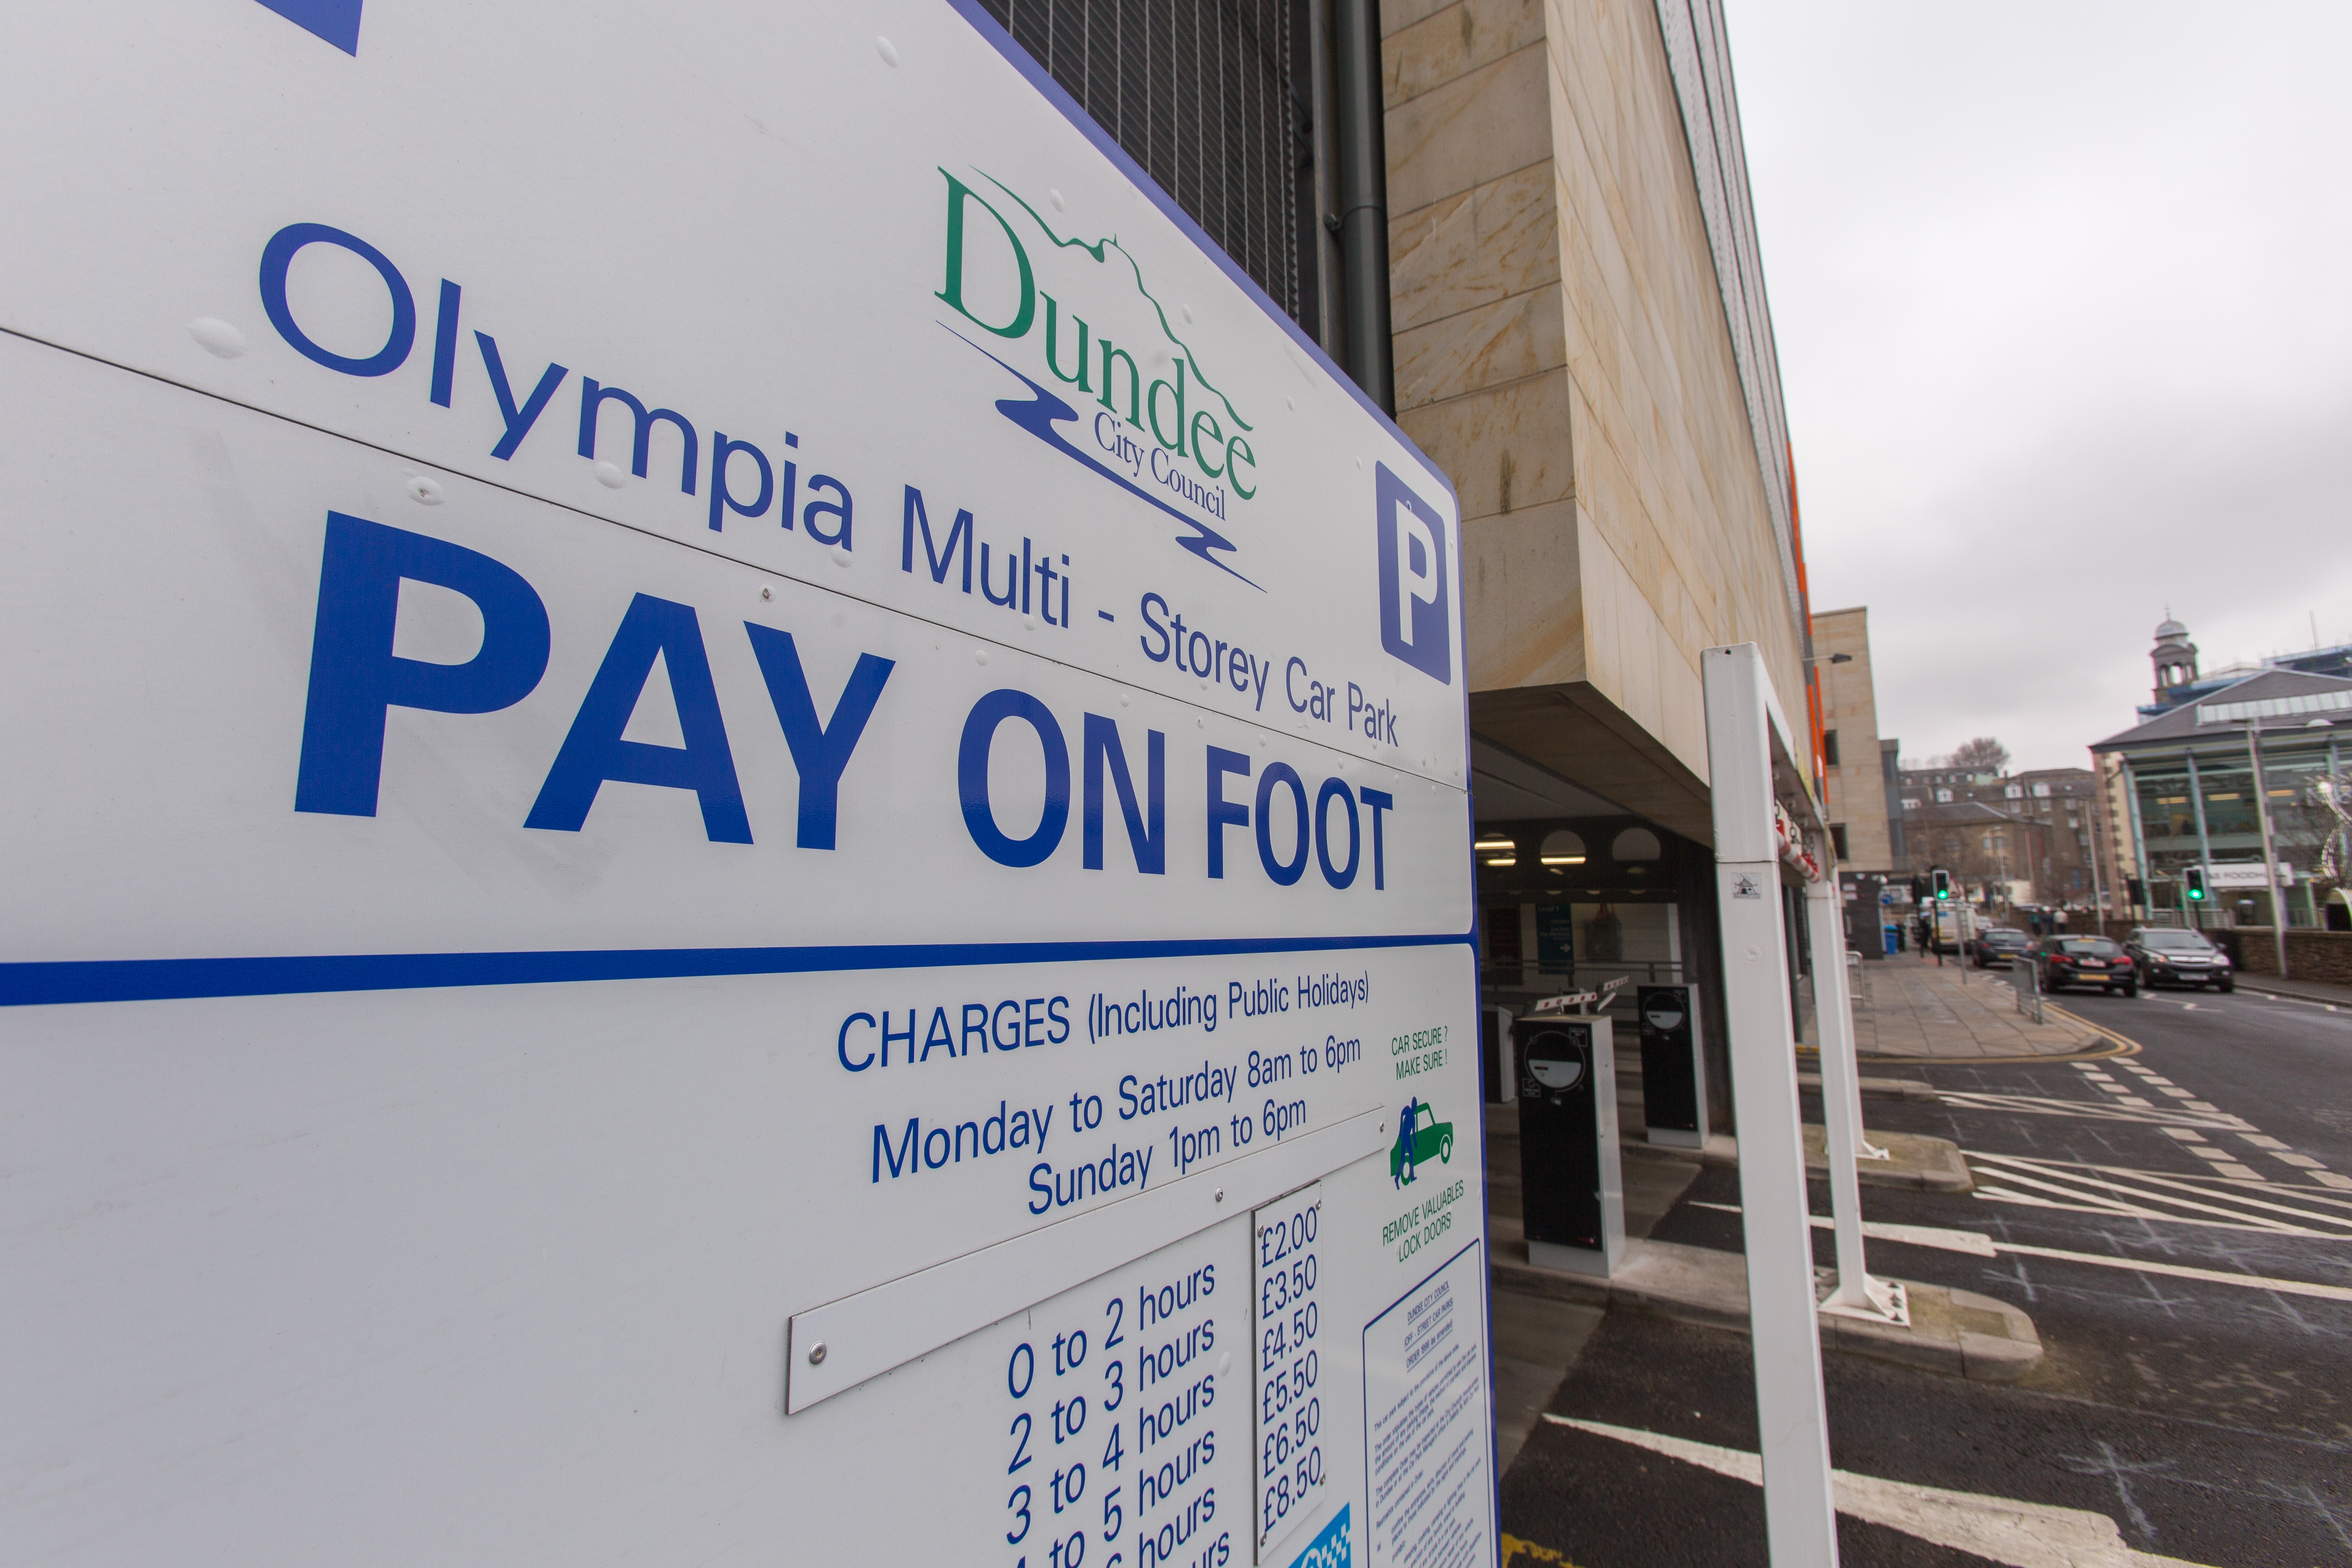 Parking charges will remain suspended in Dundee.